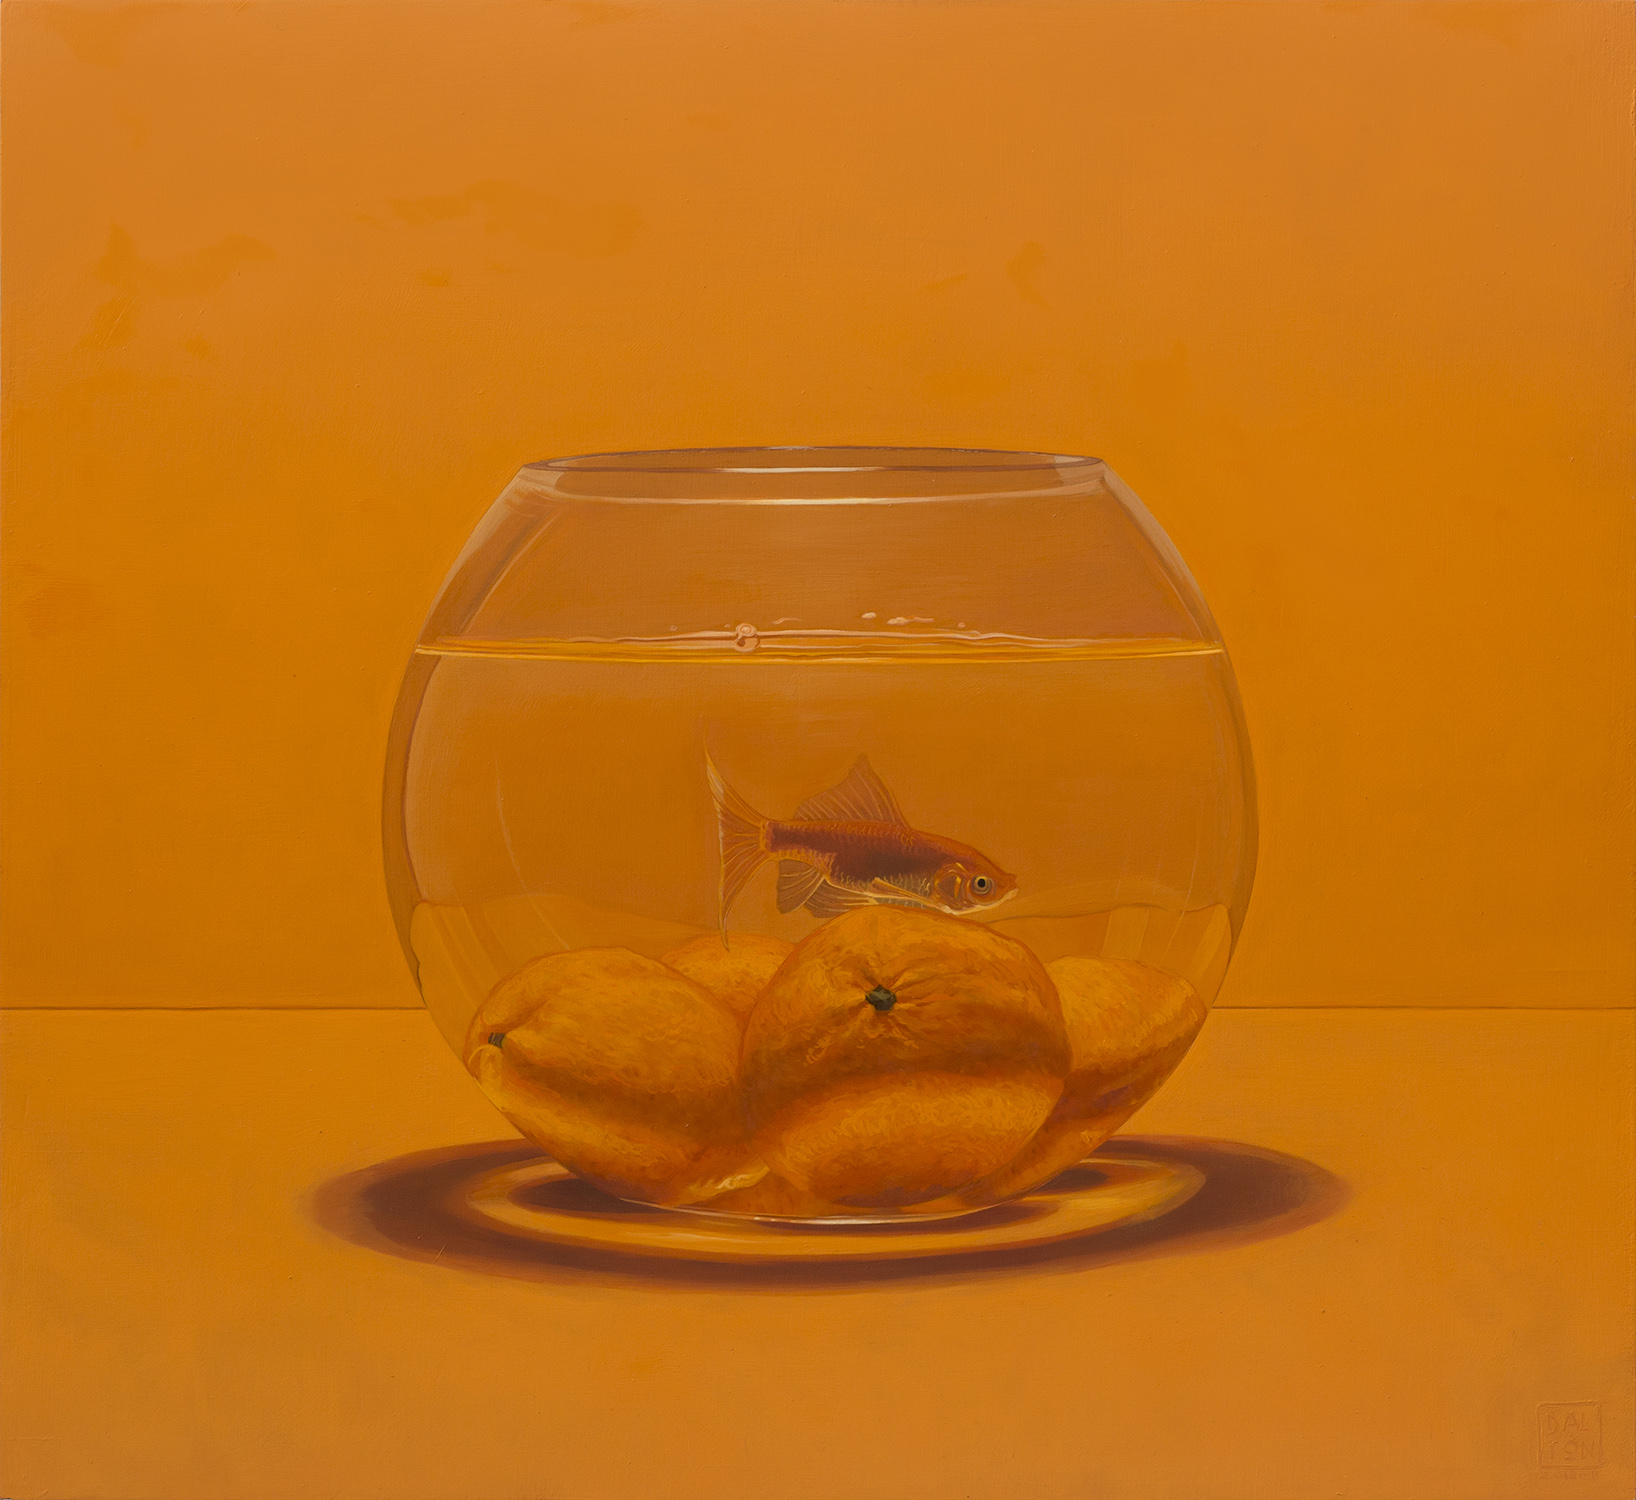 Fishbowl Orange 55x60cm Oil on Board.jpg